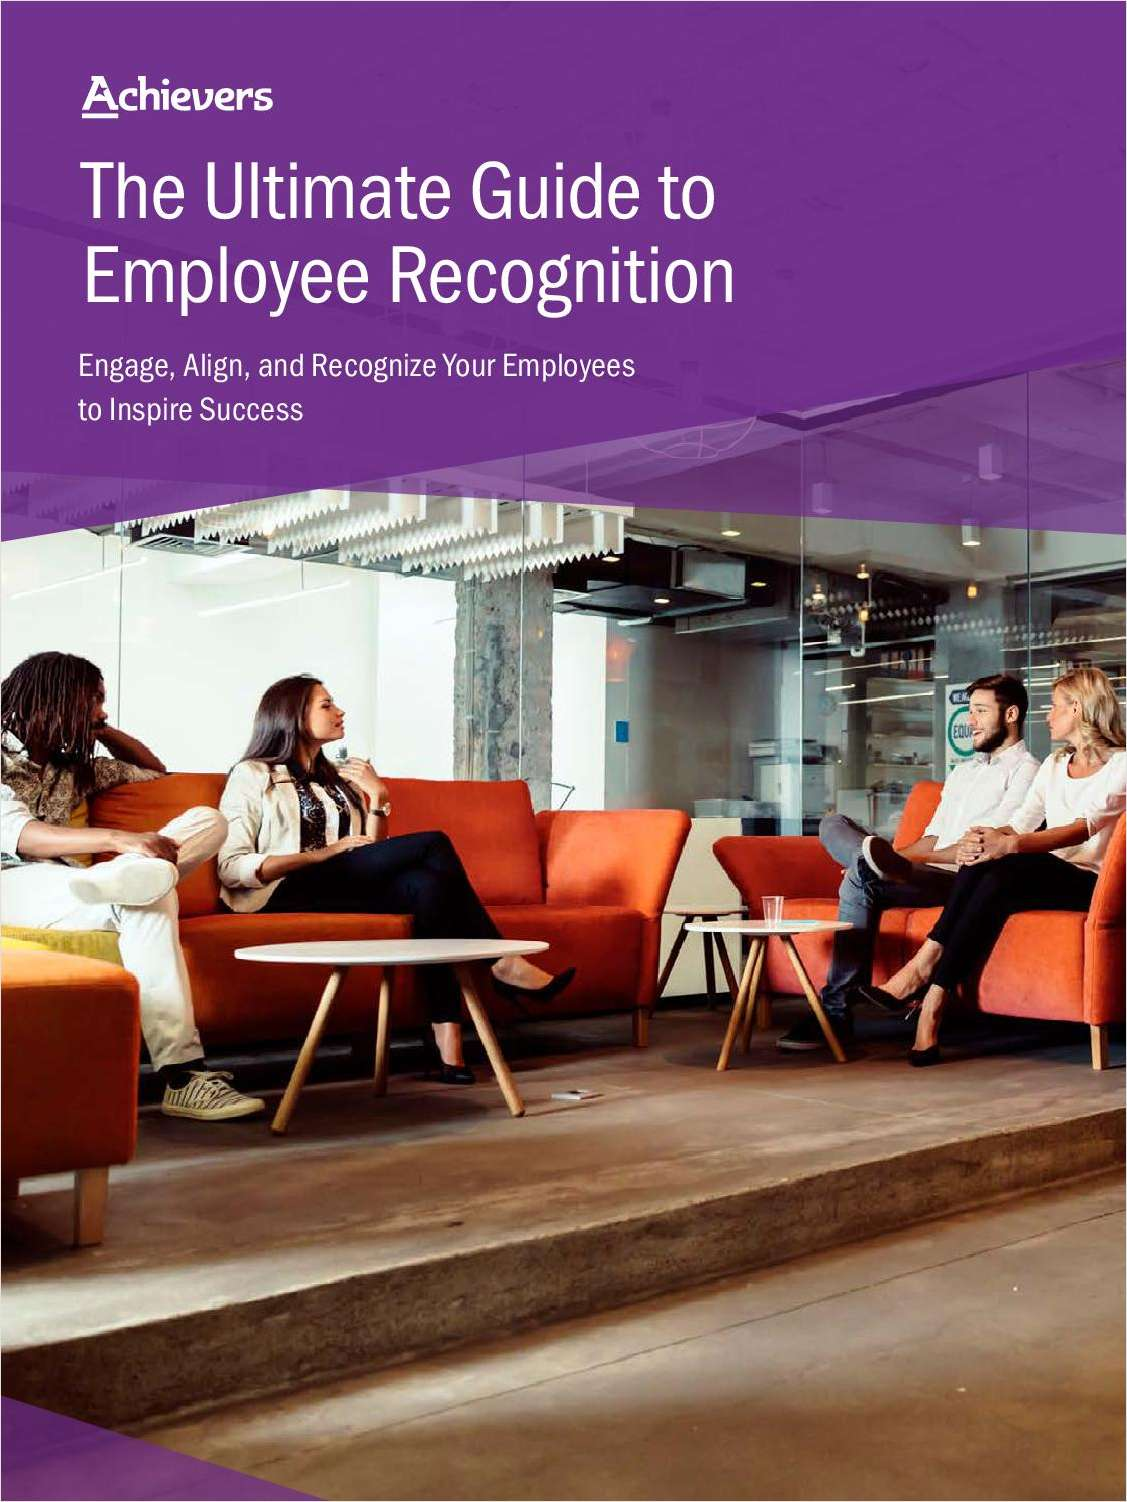 The Ultimate Guide to Employee Recognition